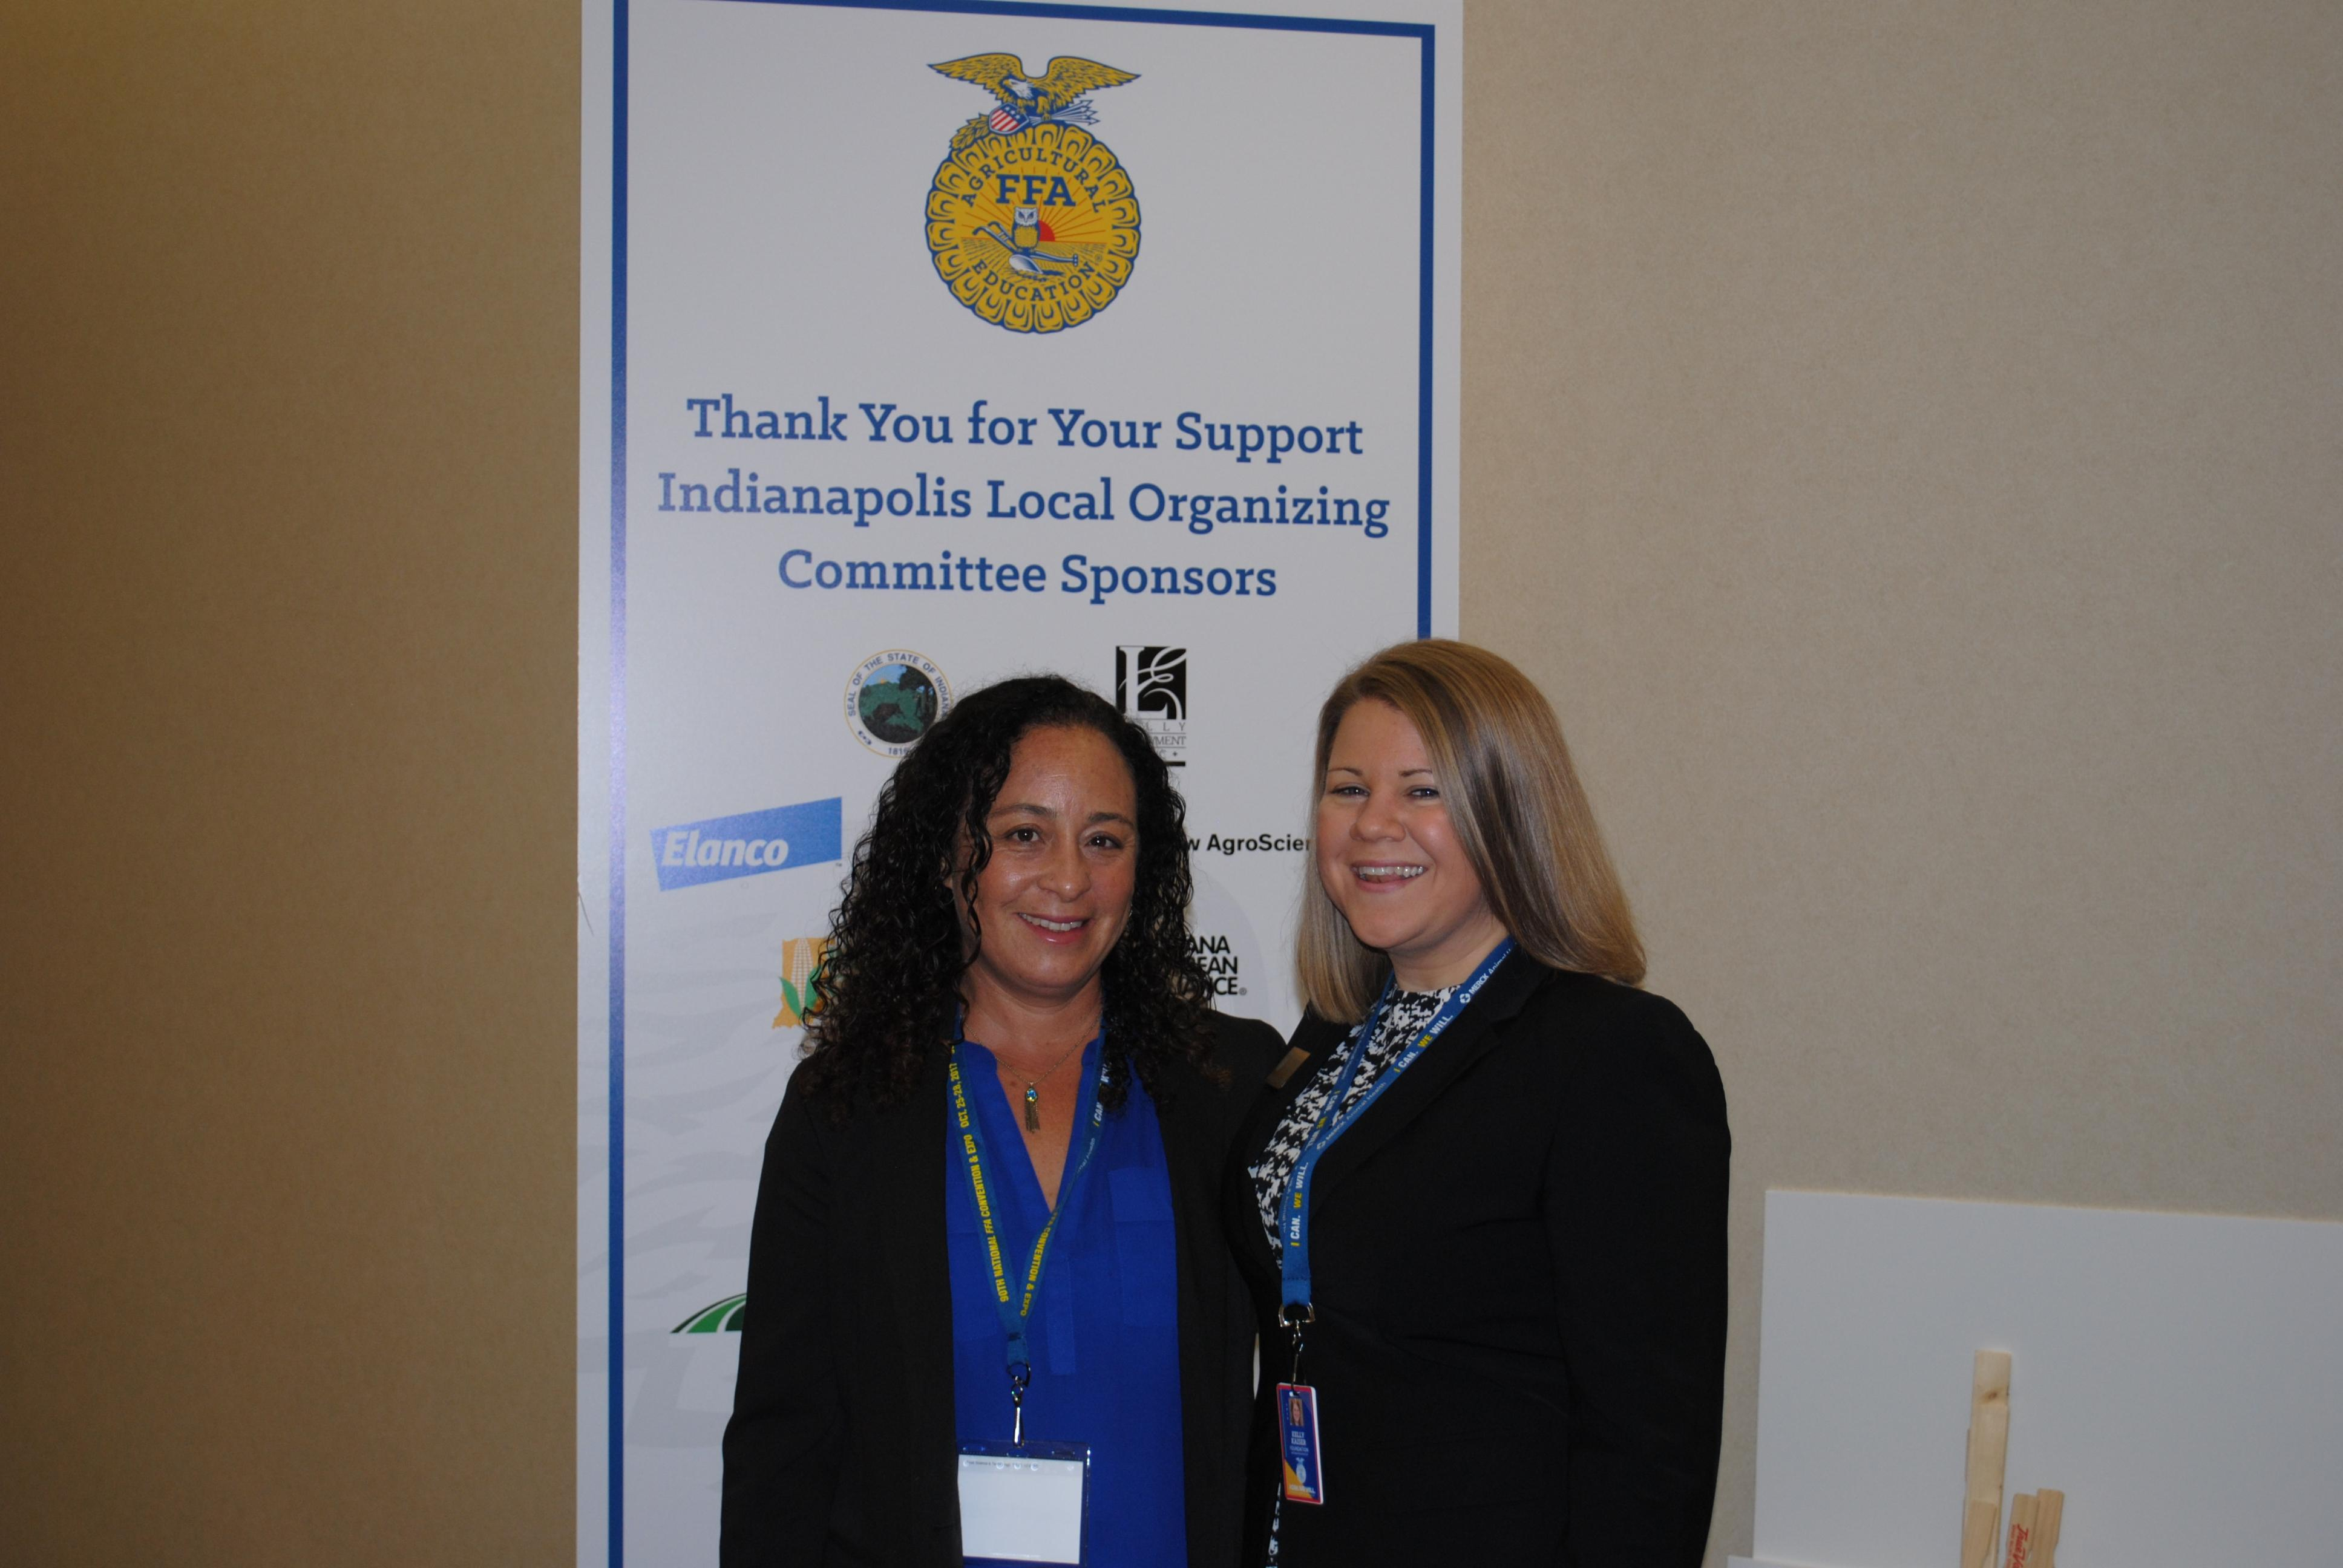 Kelly Kaiser, Associate Regional Director for the National FFA Foundation and Josaphine Stevenson, Program Specialist for the CCOF Foundation